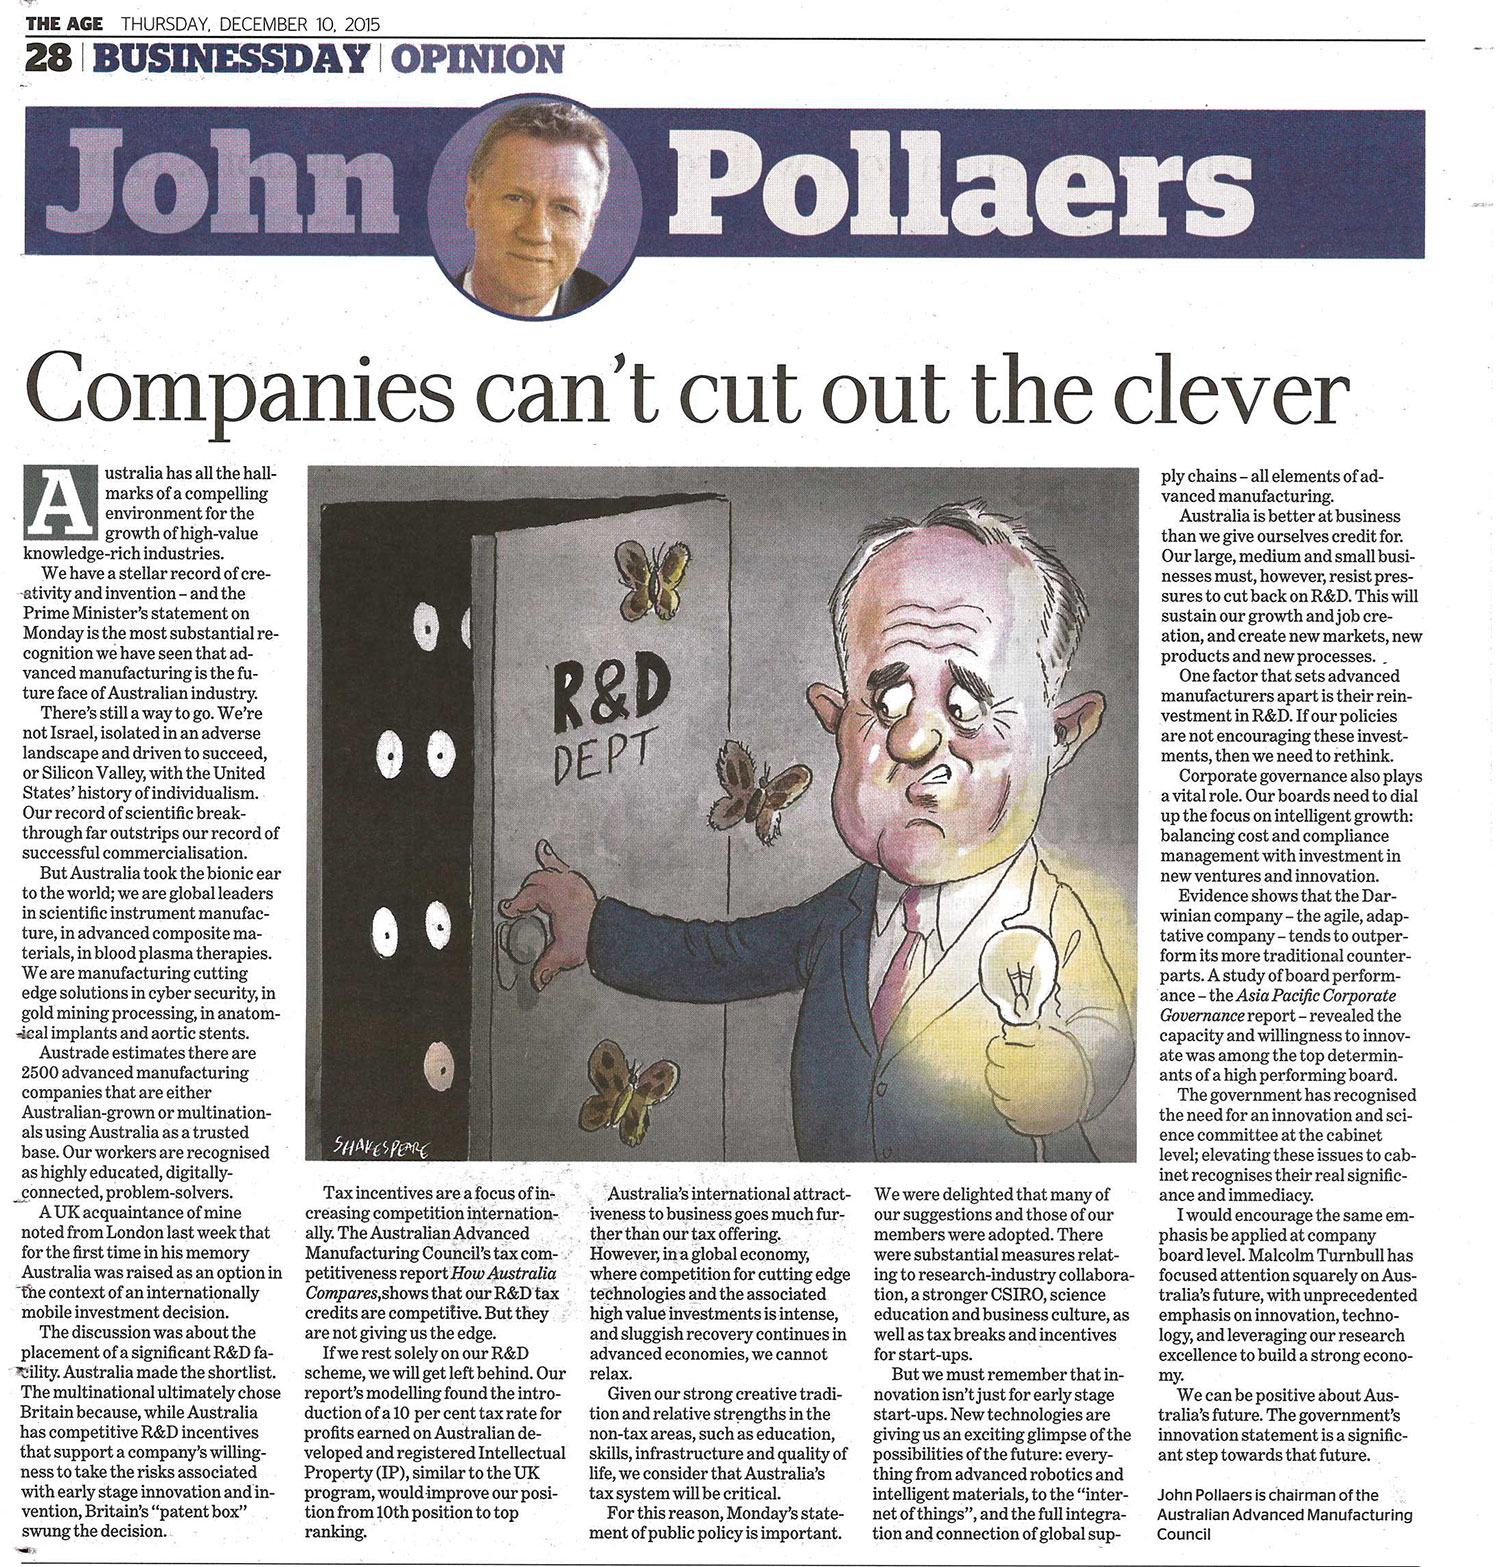 Pollaers-J-Companies-can't-cut-out-the-clever